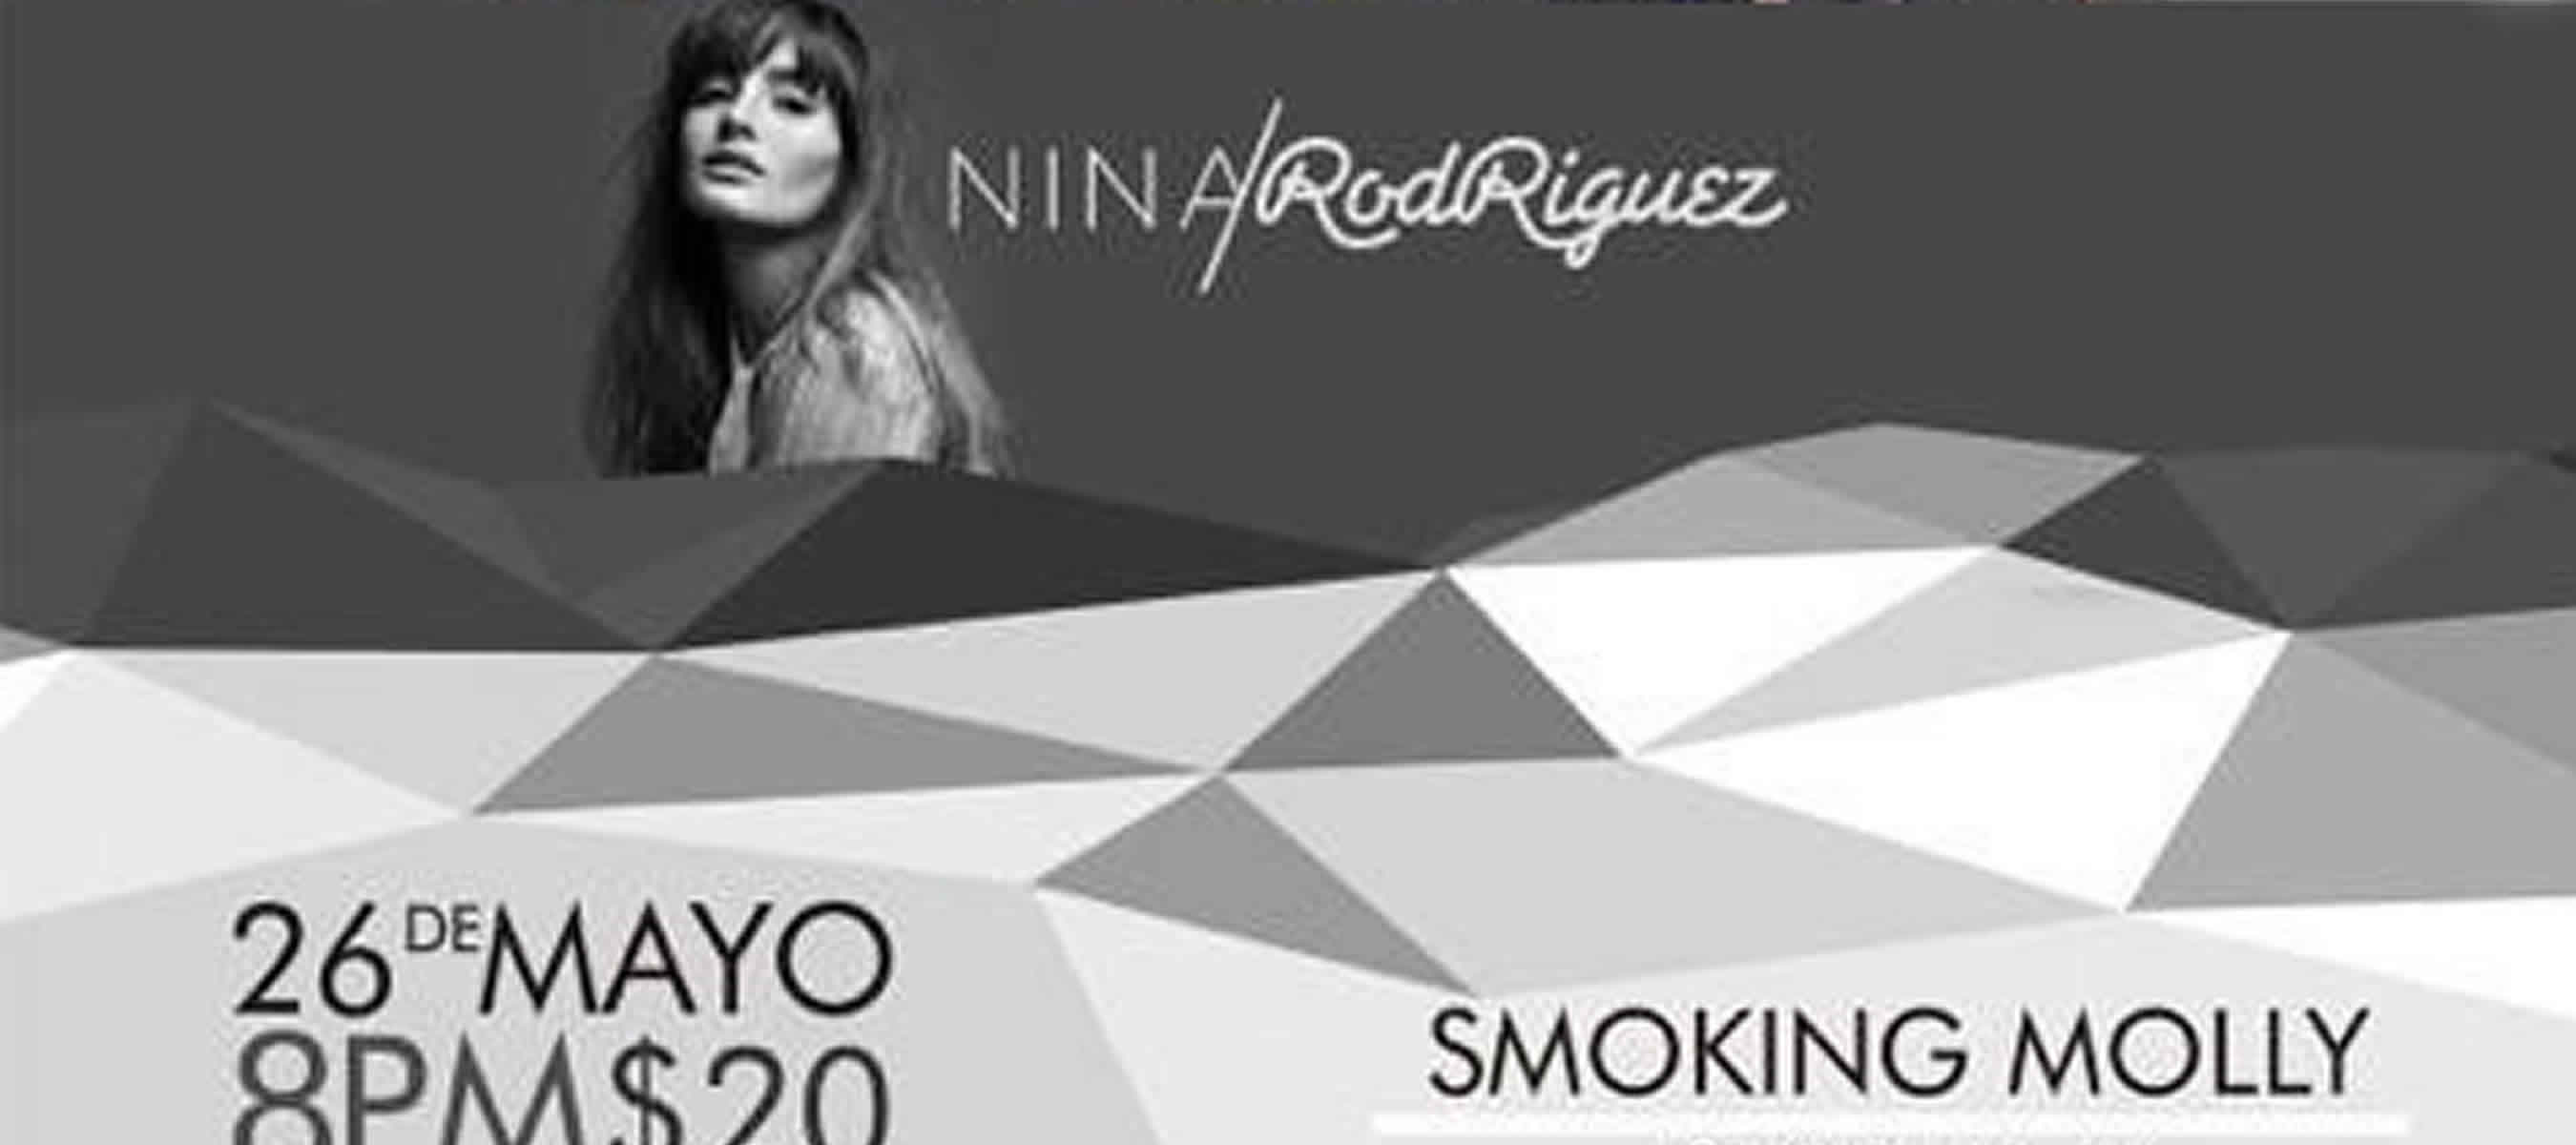 Nina Rodriguez en Smoking Molly